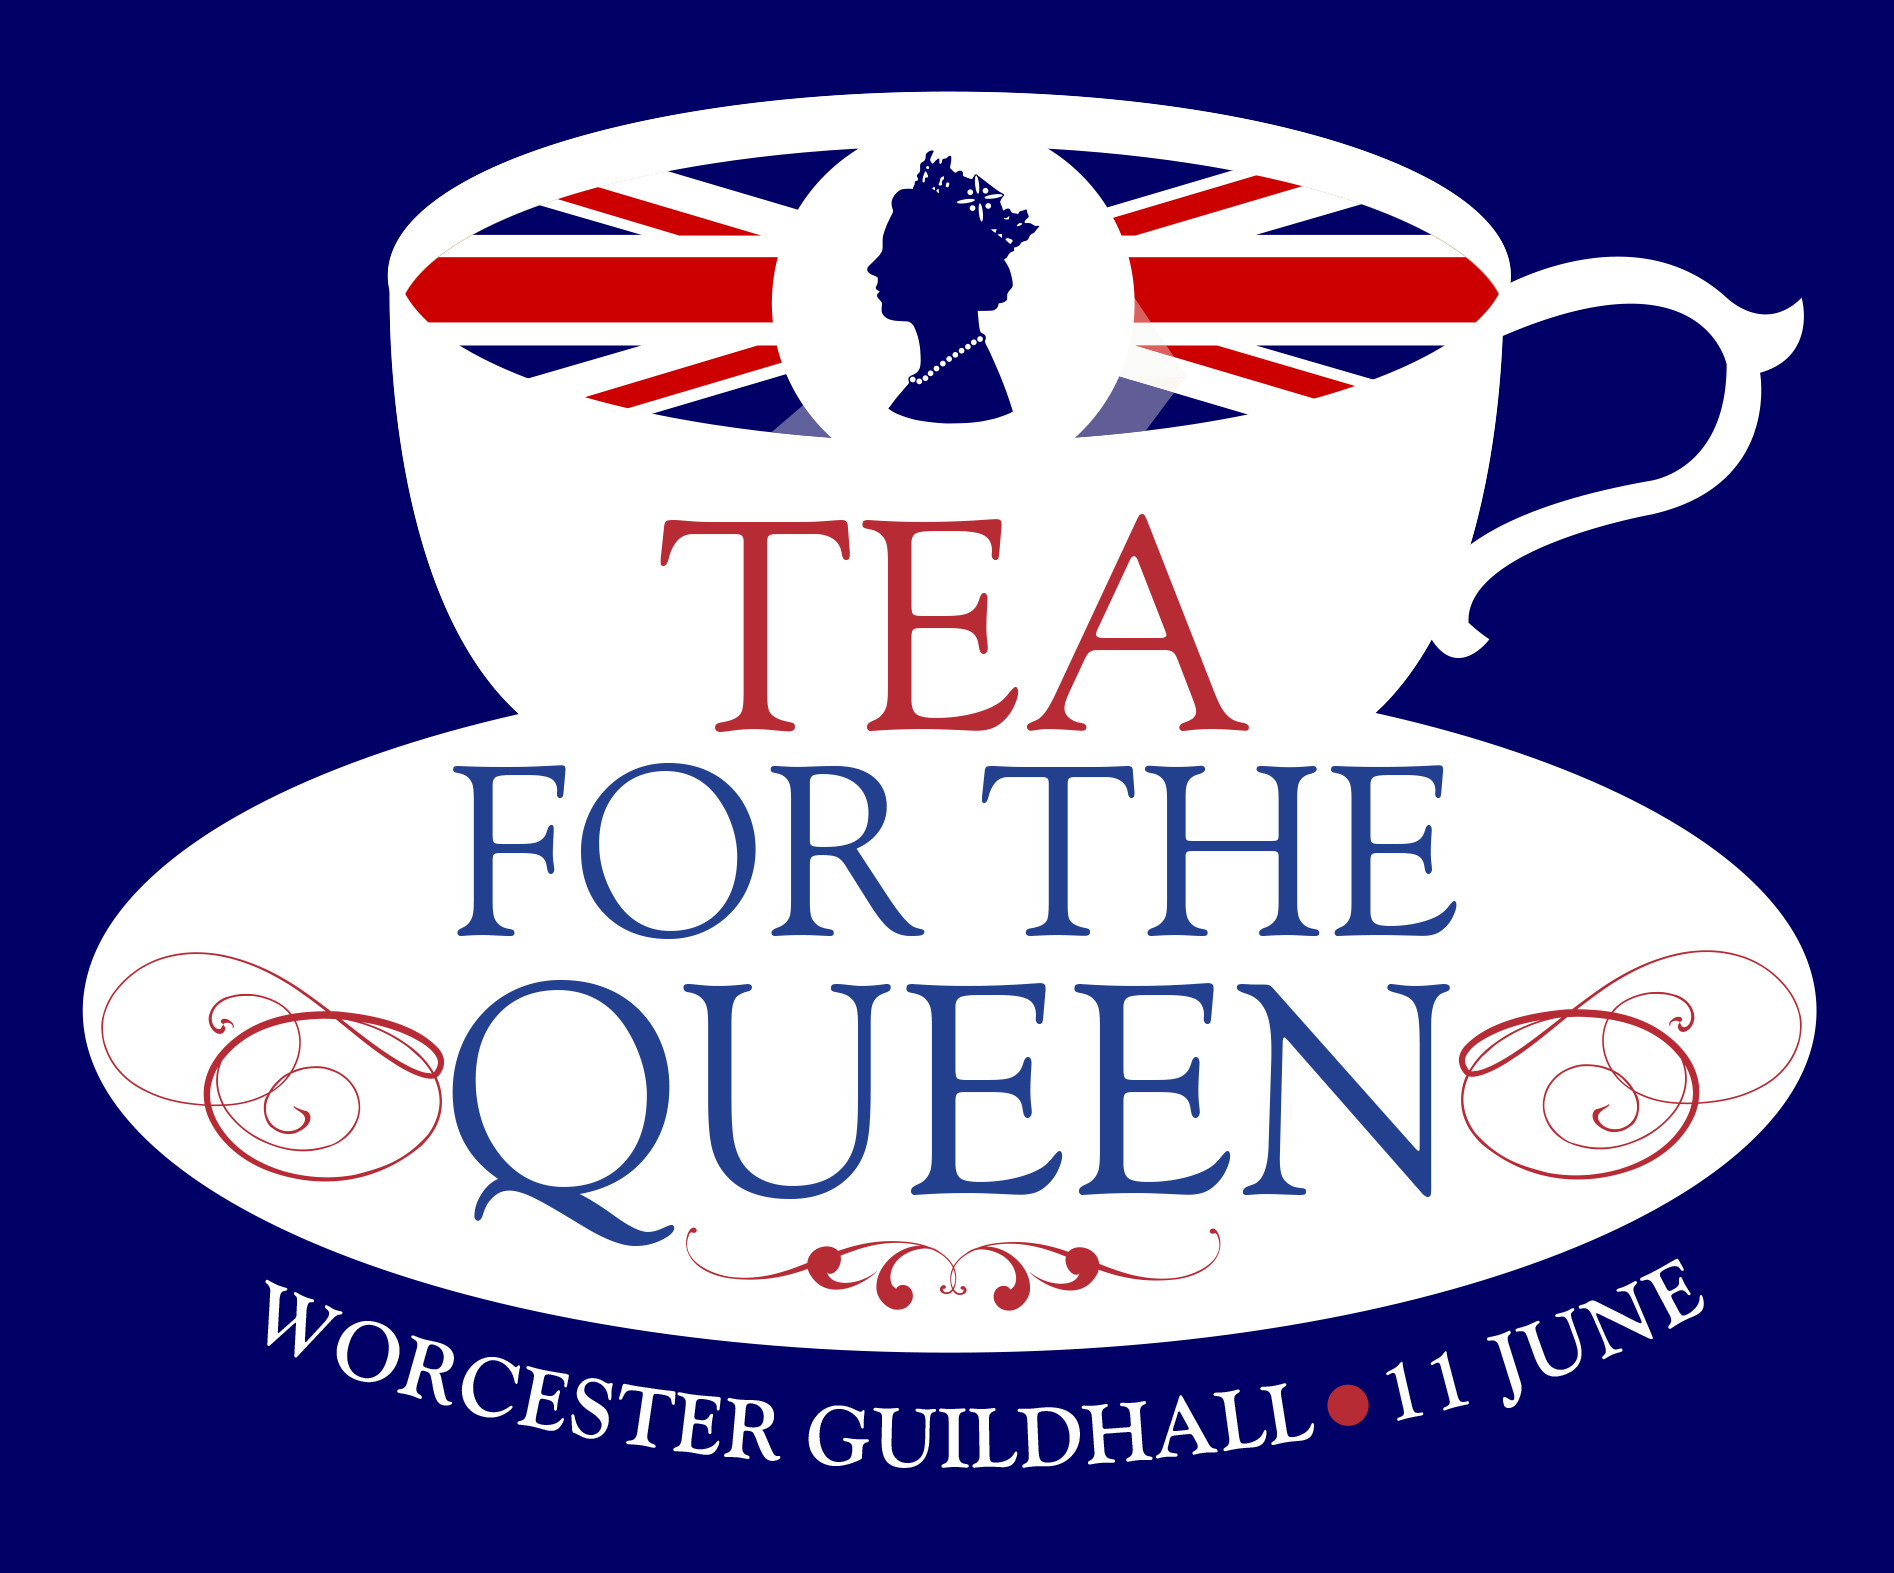 Tea for the queen logo